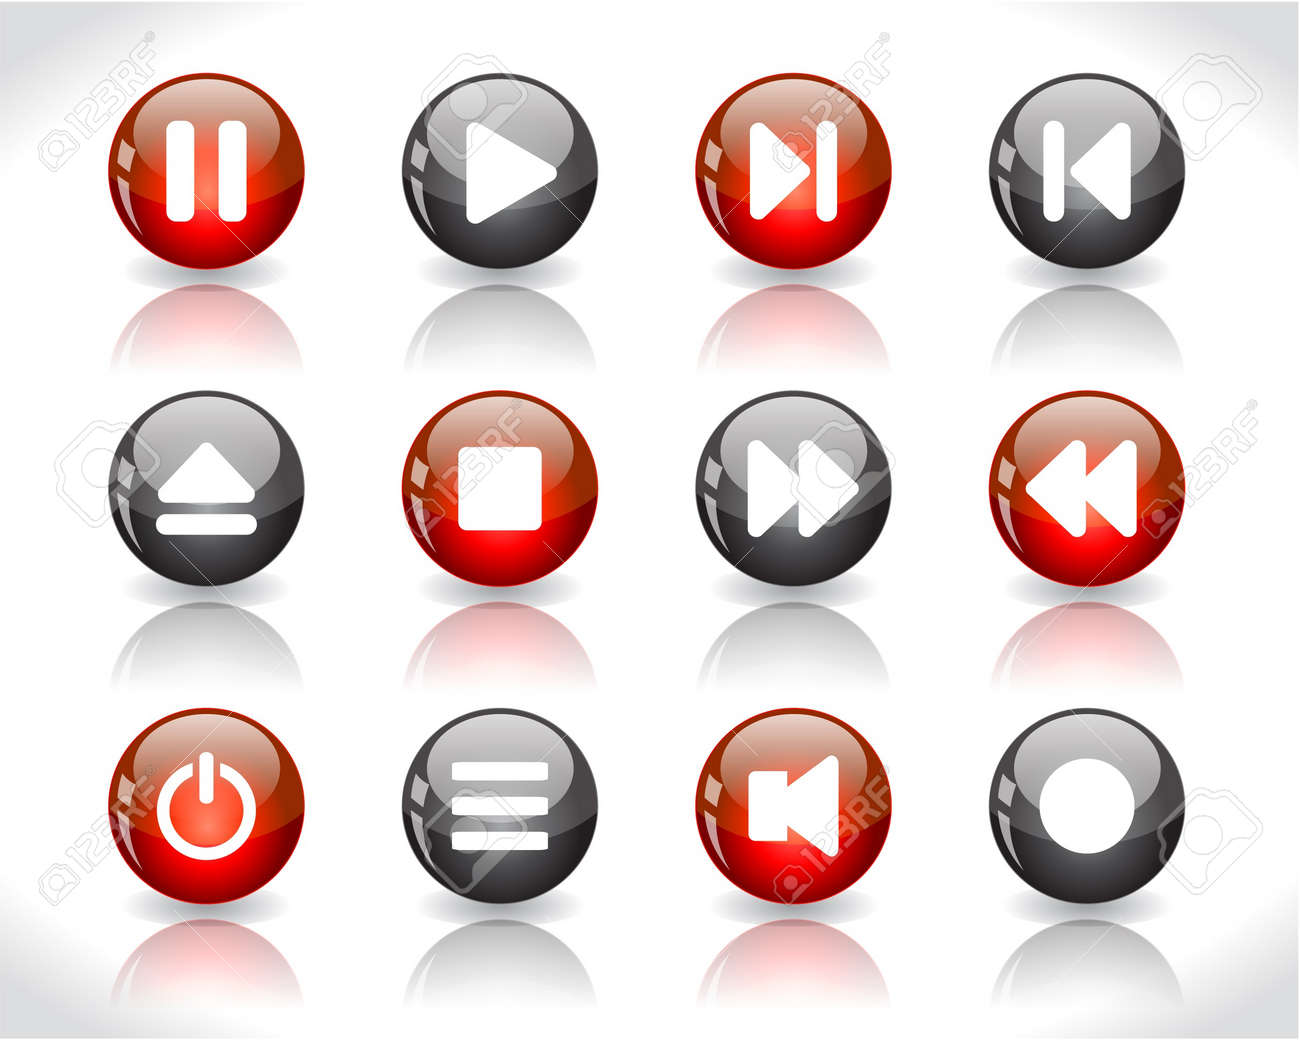 media buttons. Stock Photo - 7300374